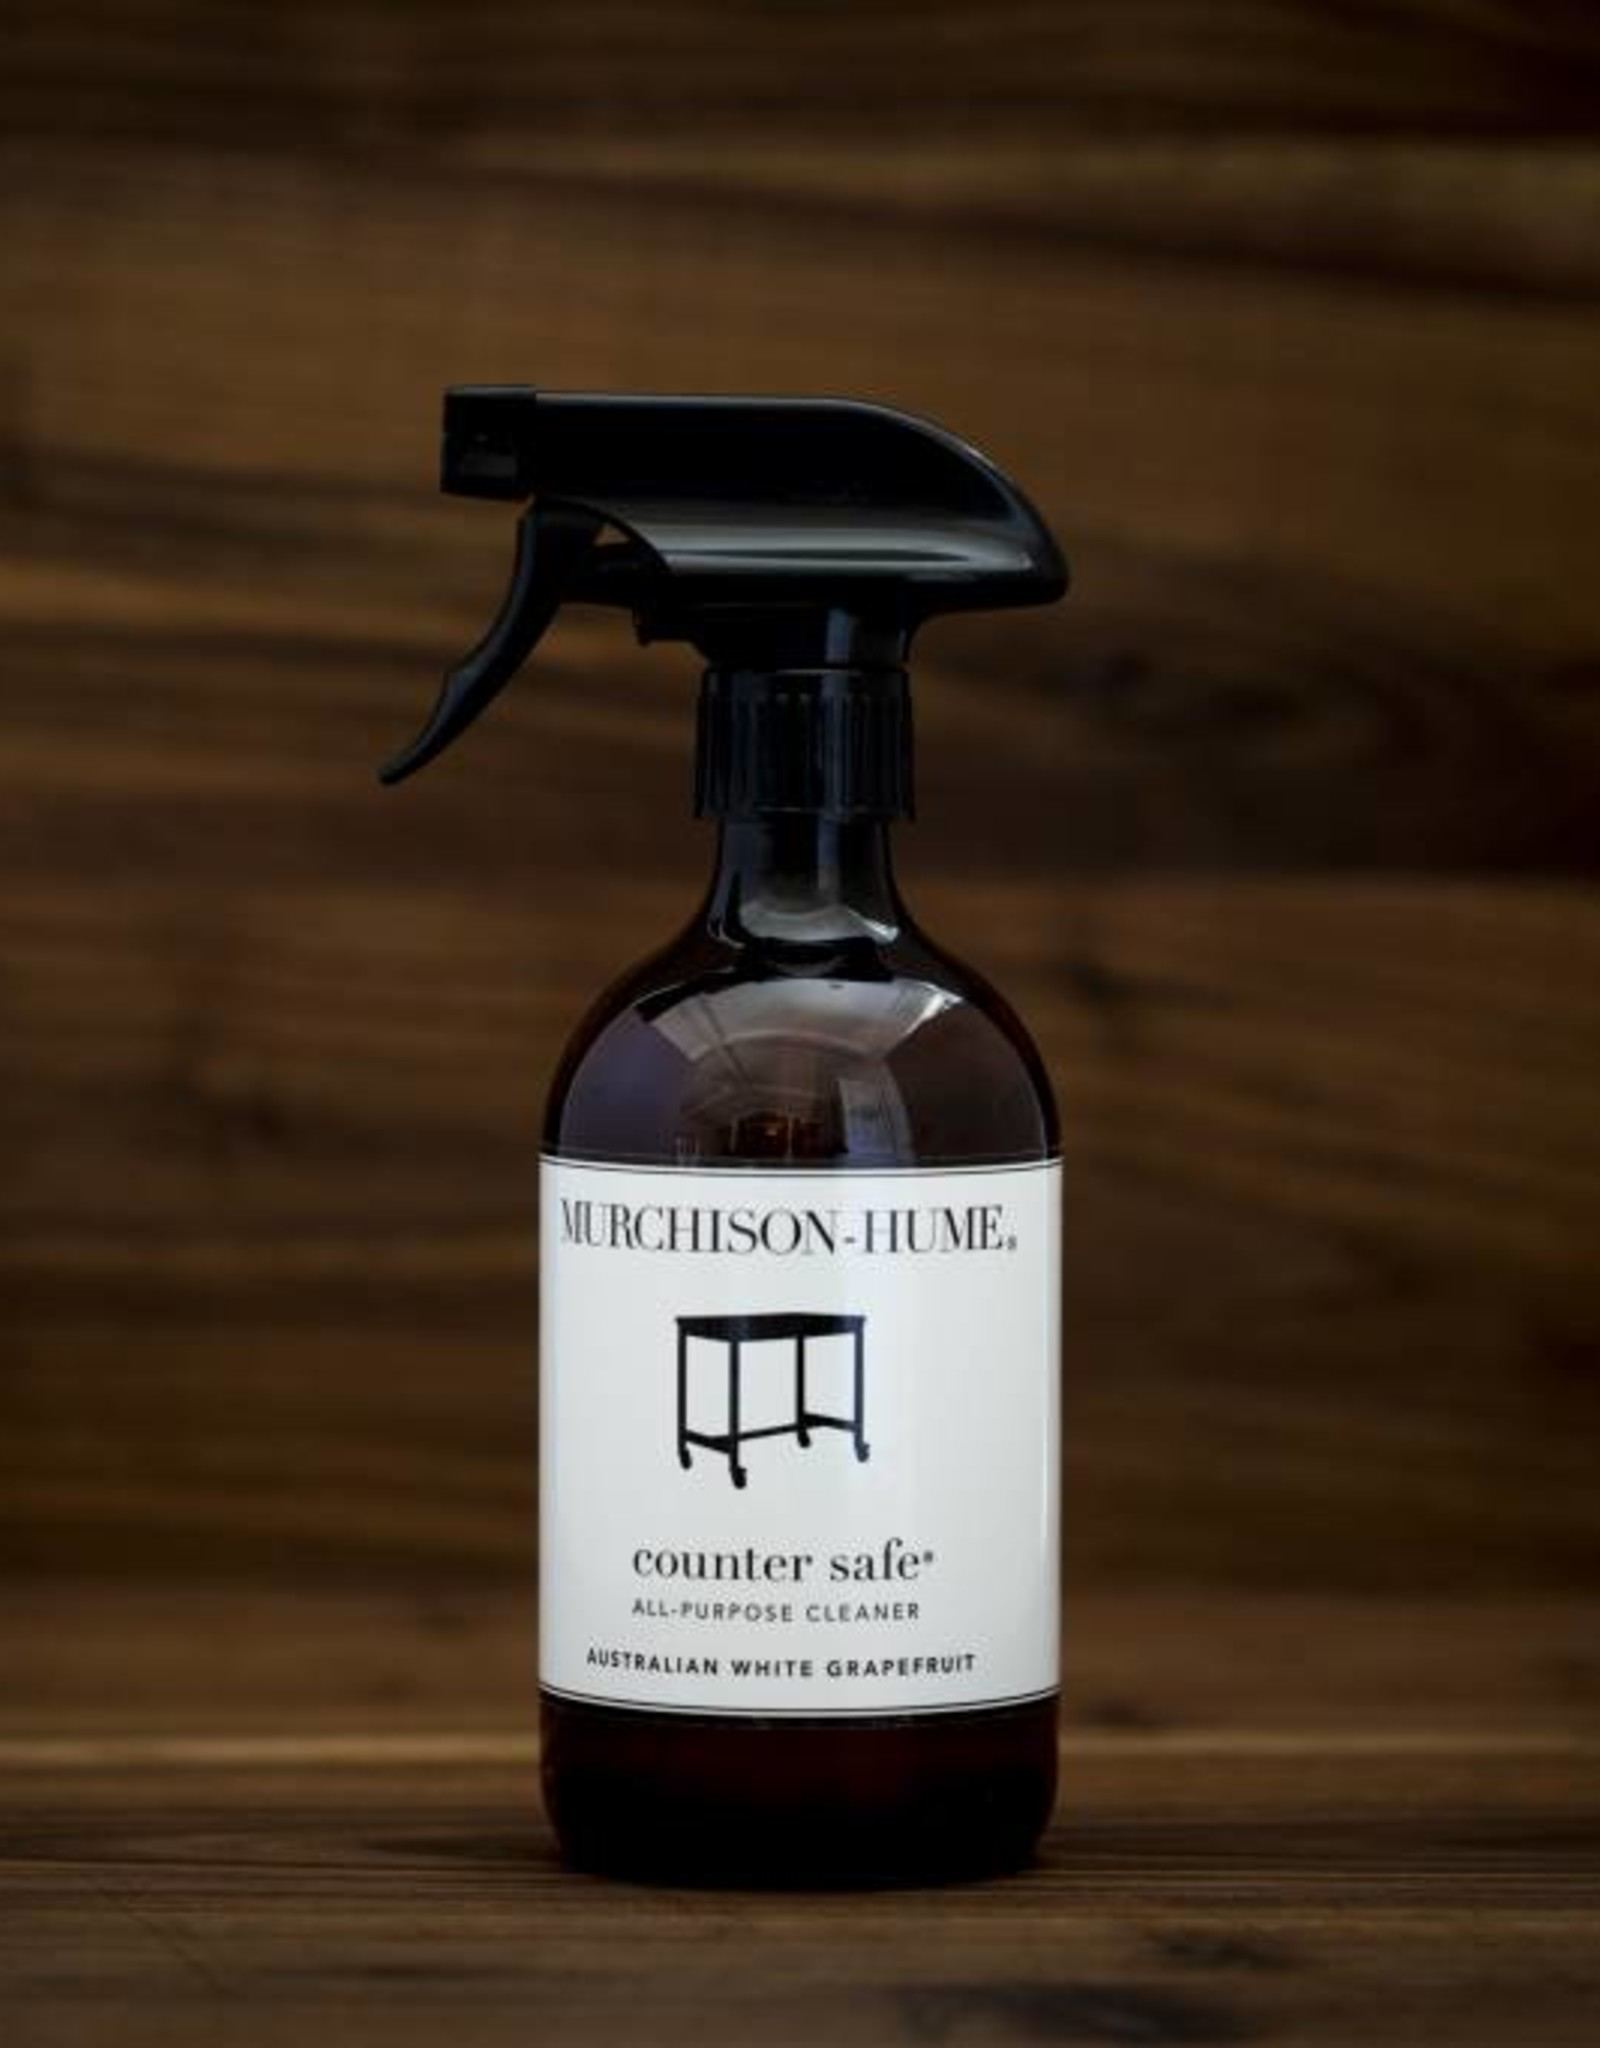 Murchison-Hume Counter Safe All-Purpose Cleaner